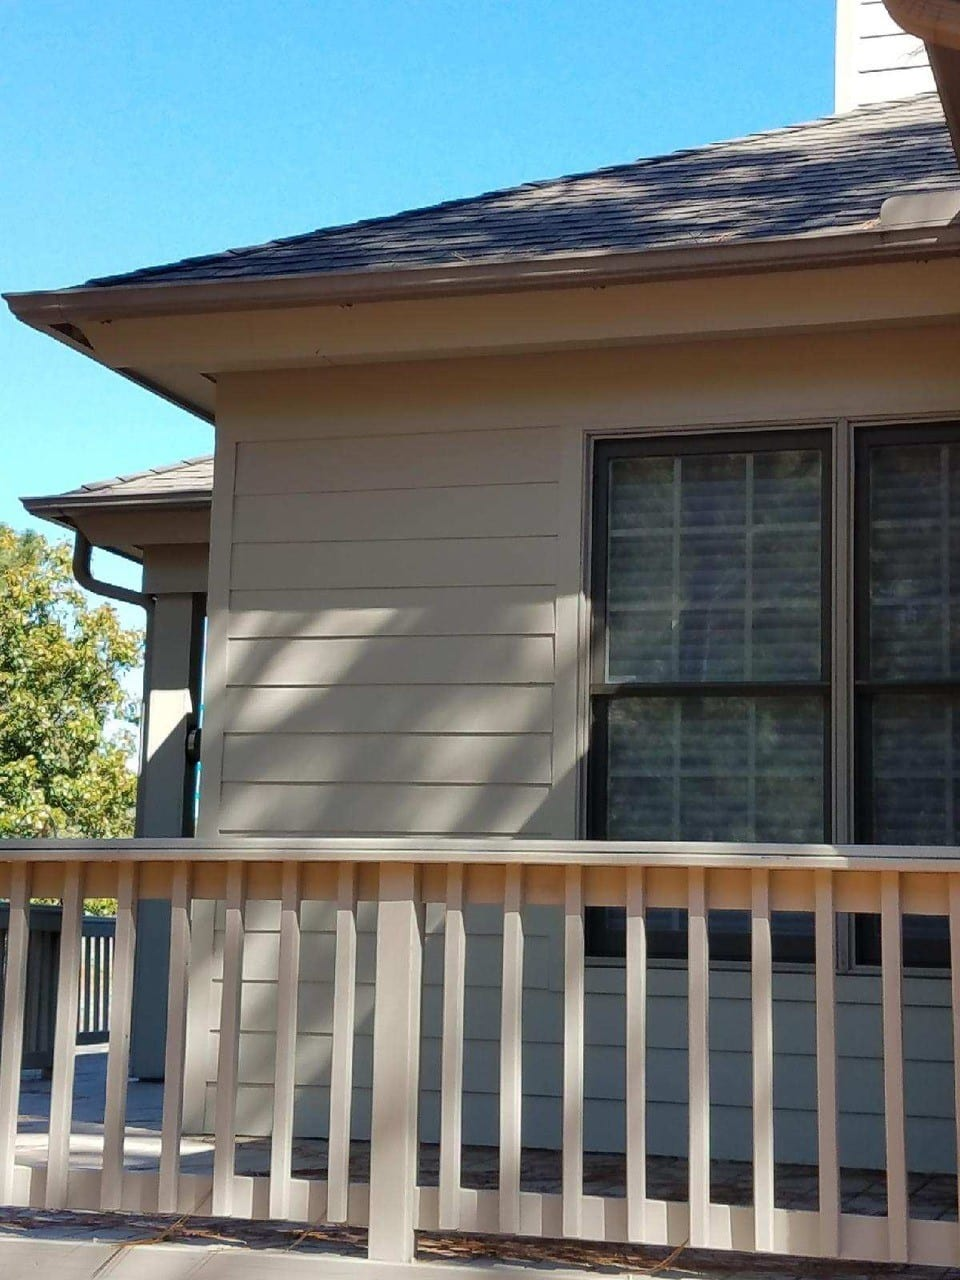 Freshly painted house and porch railing